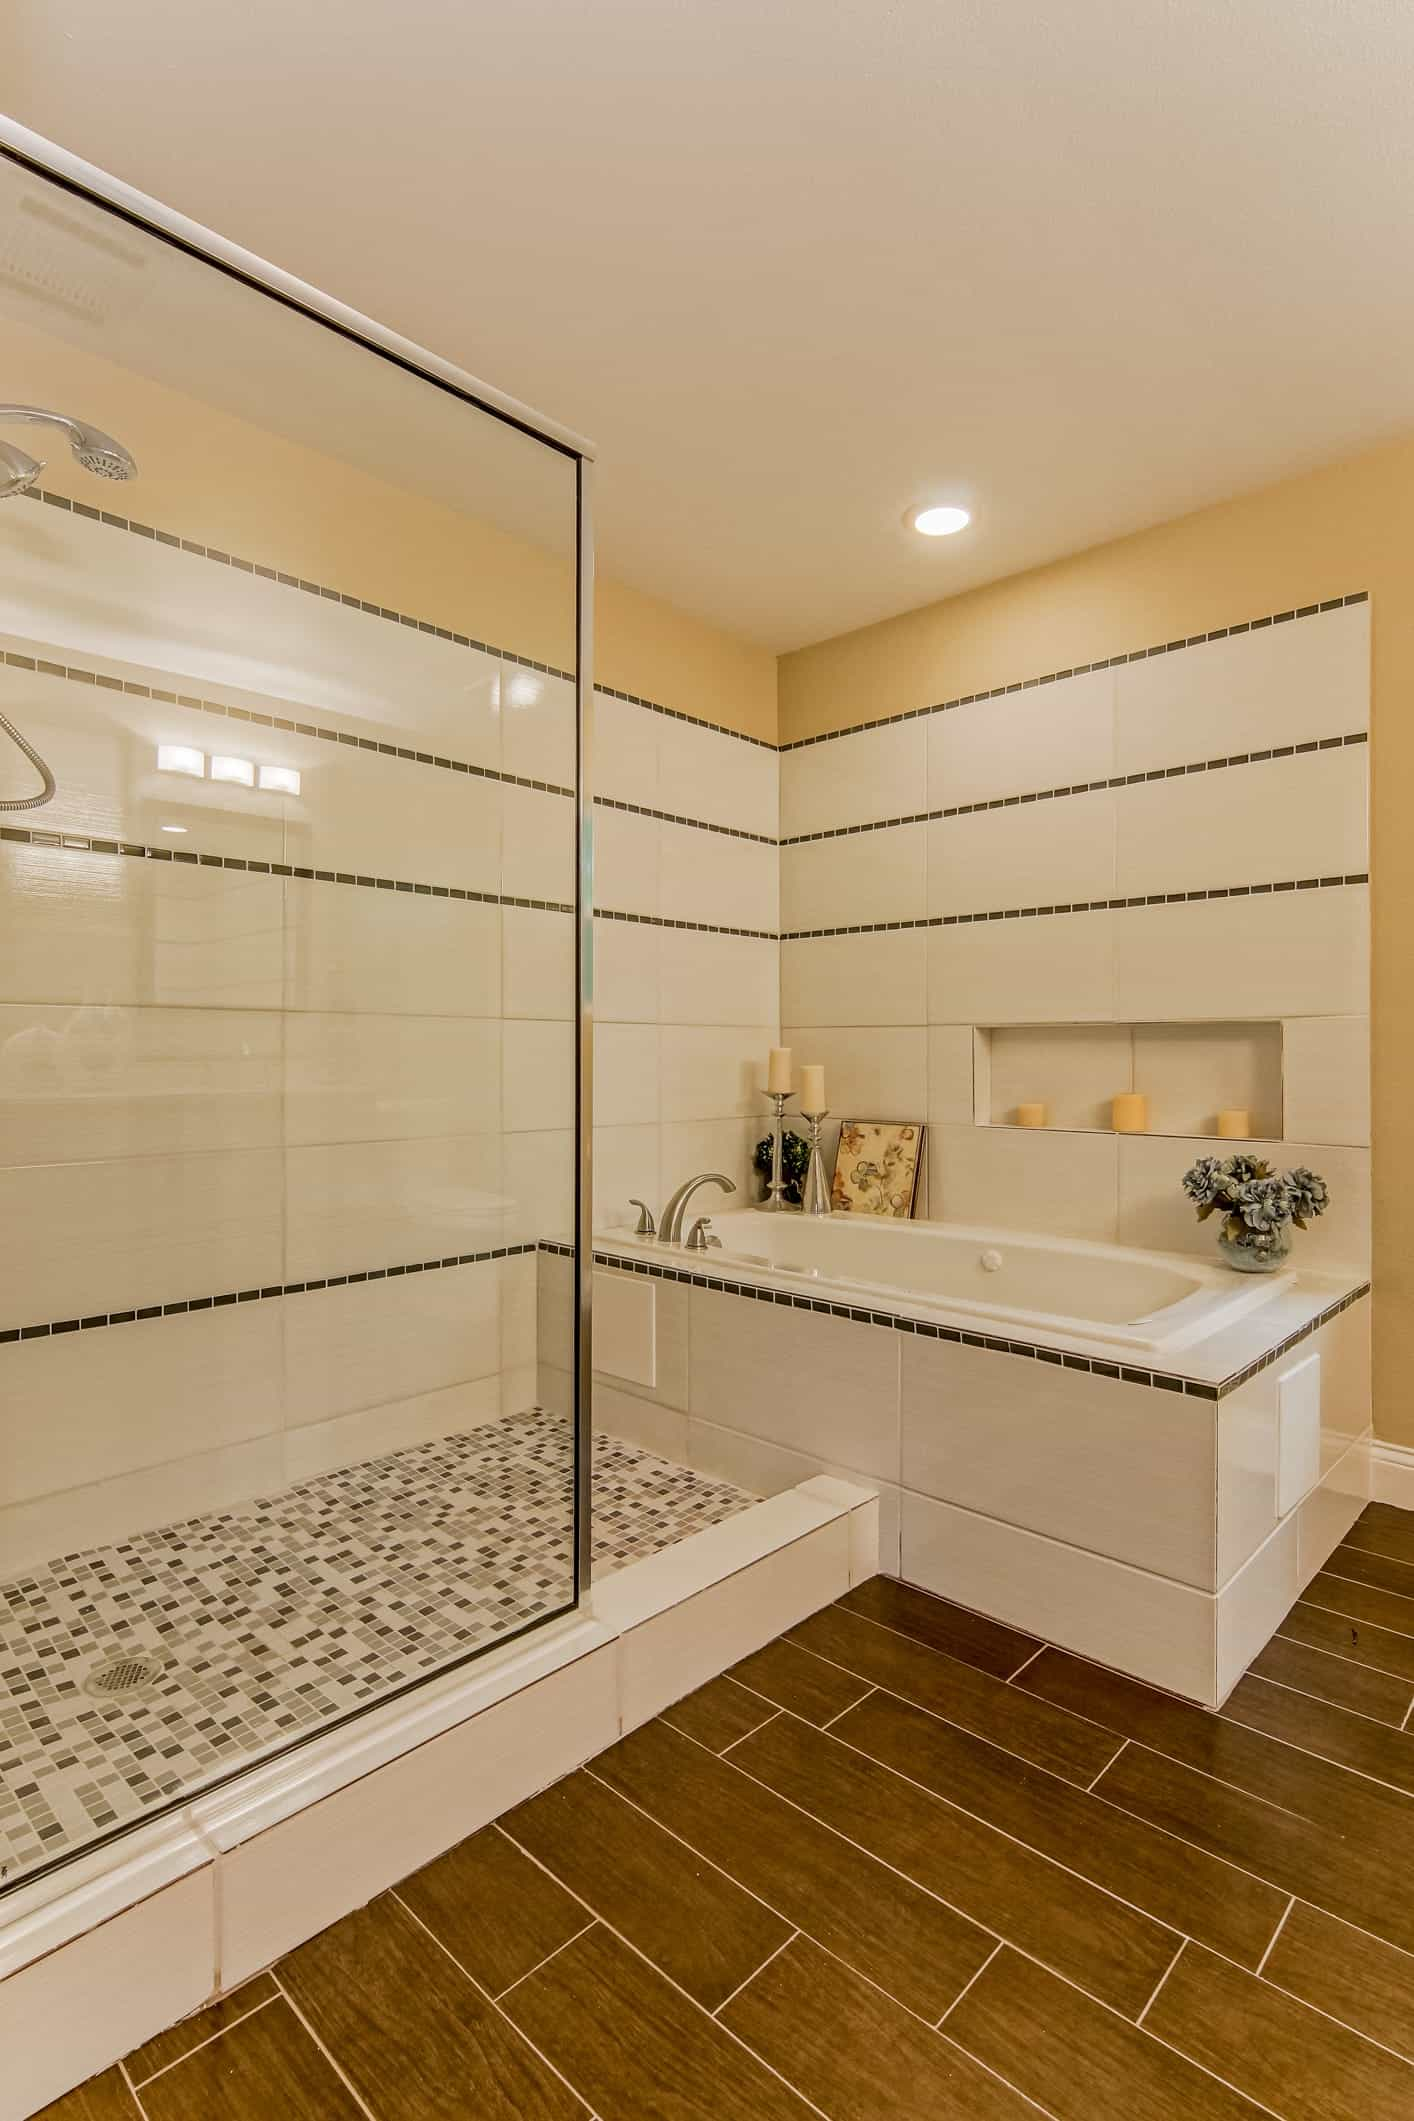 Contemporary Bathroom And Shower Combination With Glass Shower Partition (Photo 5 of 16)